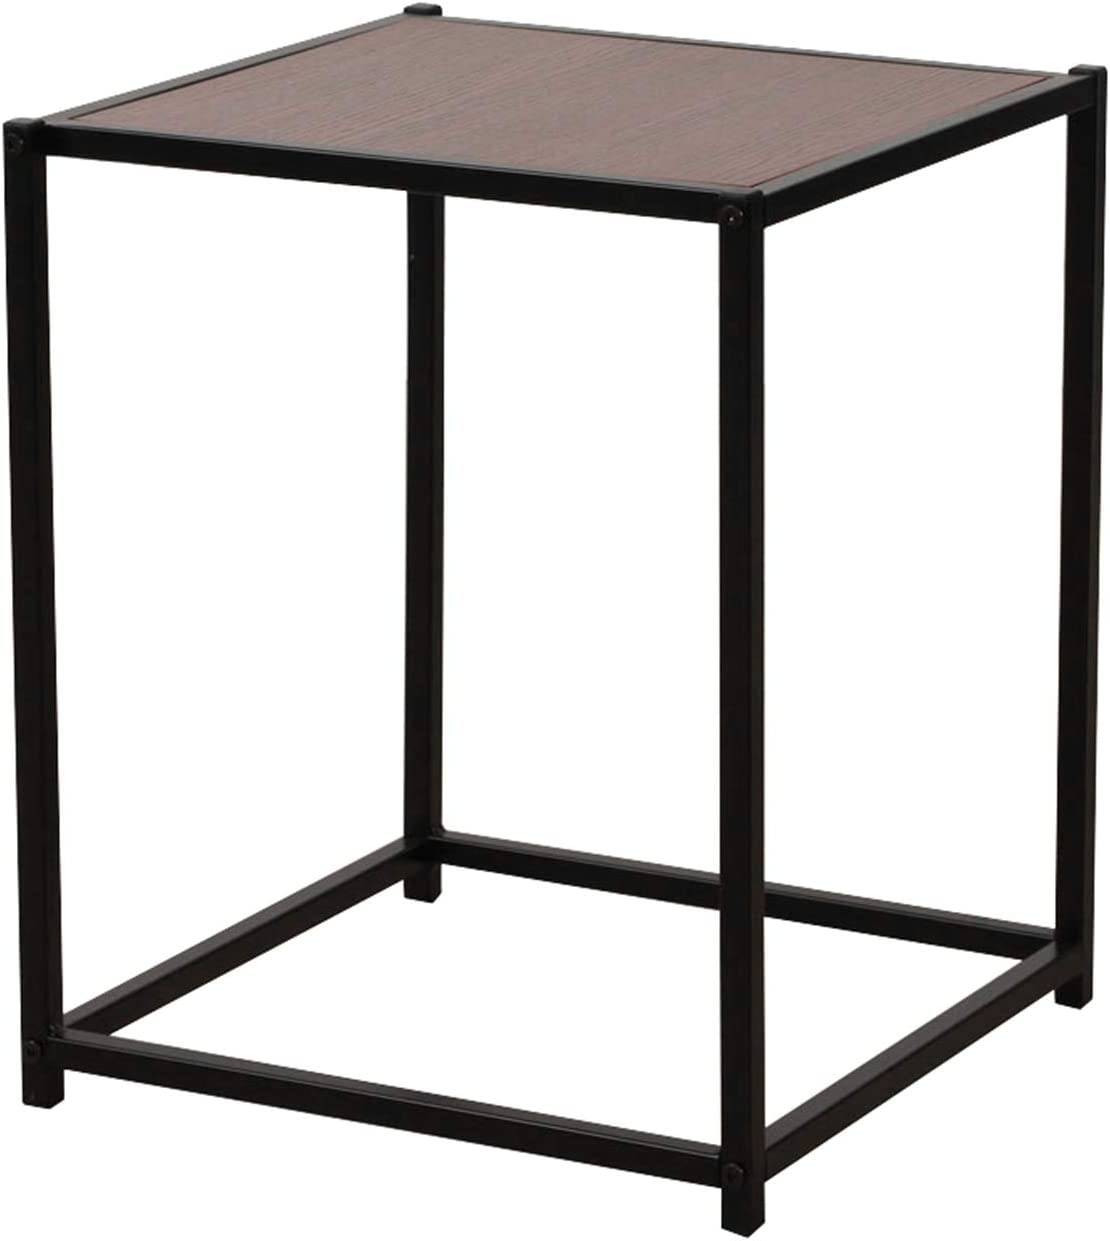 Rustic Iron Frame Wood Grain End Table Surface Side Rapid rise Direct store Veneer